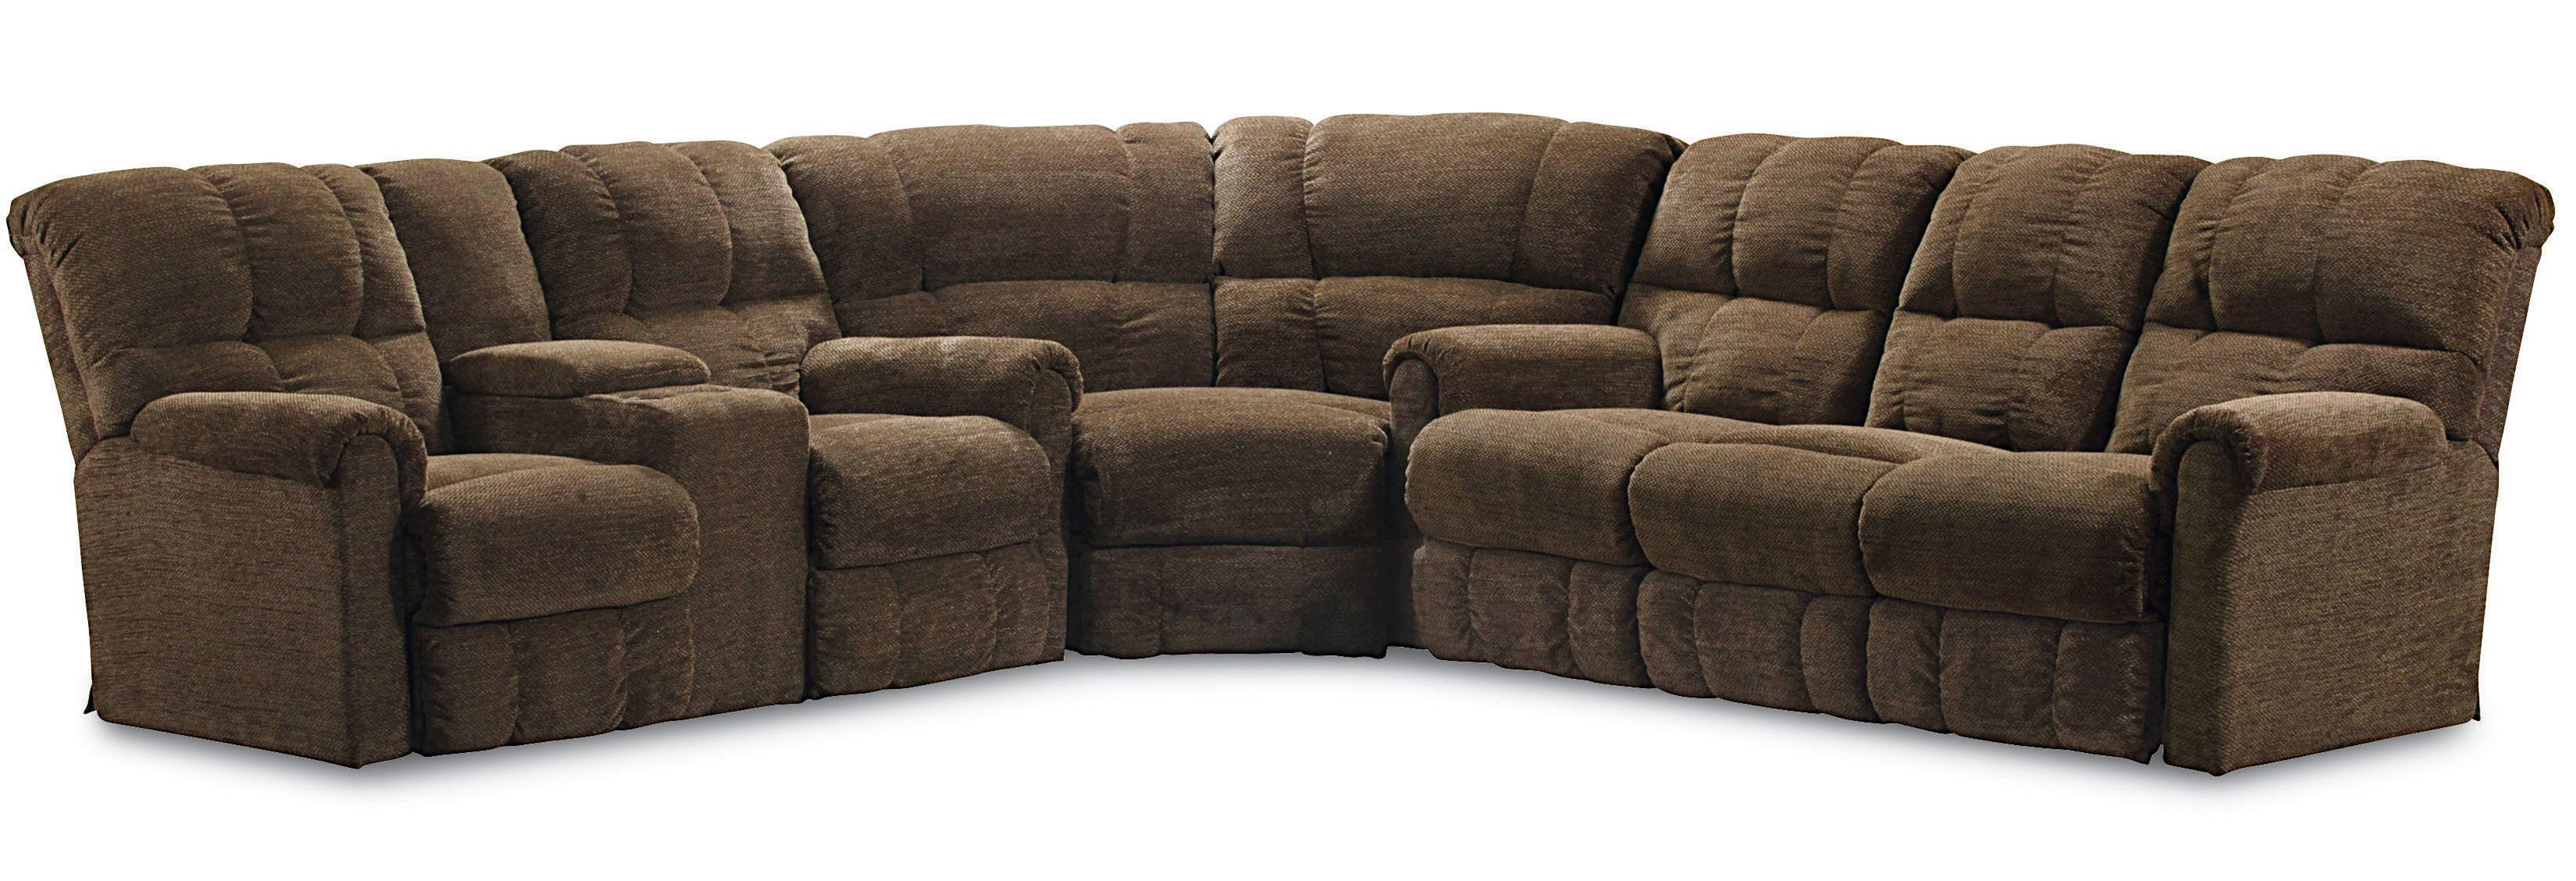 Lane griffin casual three piece reclining sectional sofa for Sectional sofa with 4 recliners